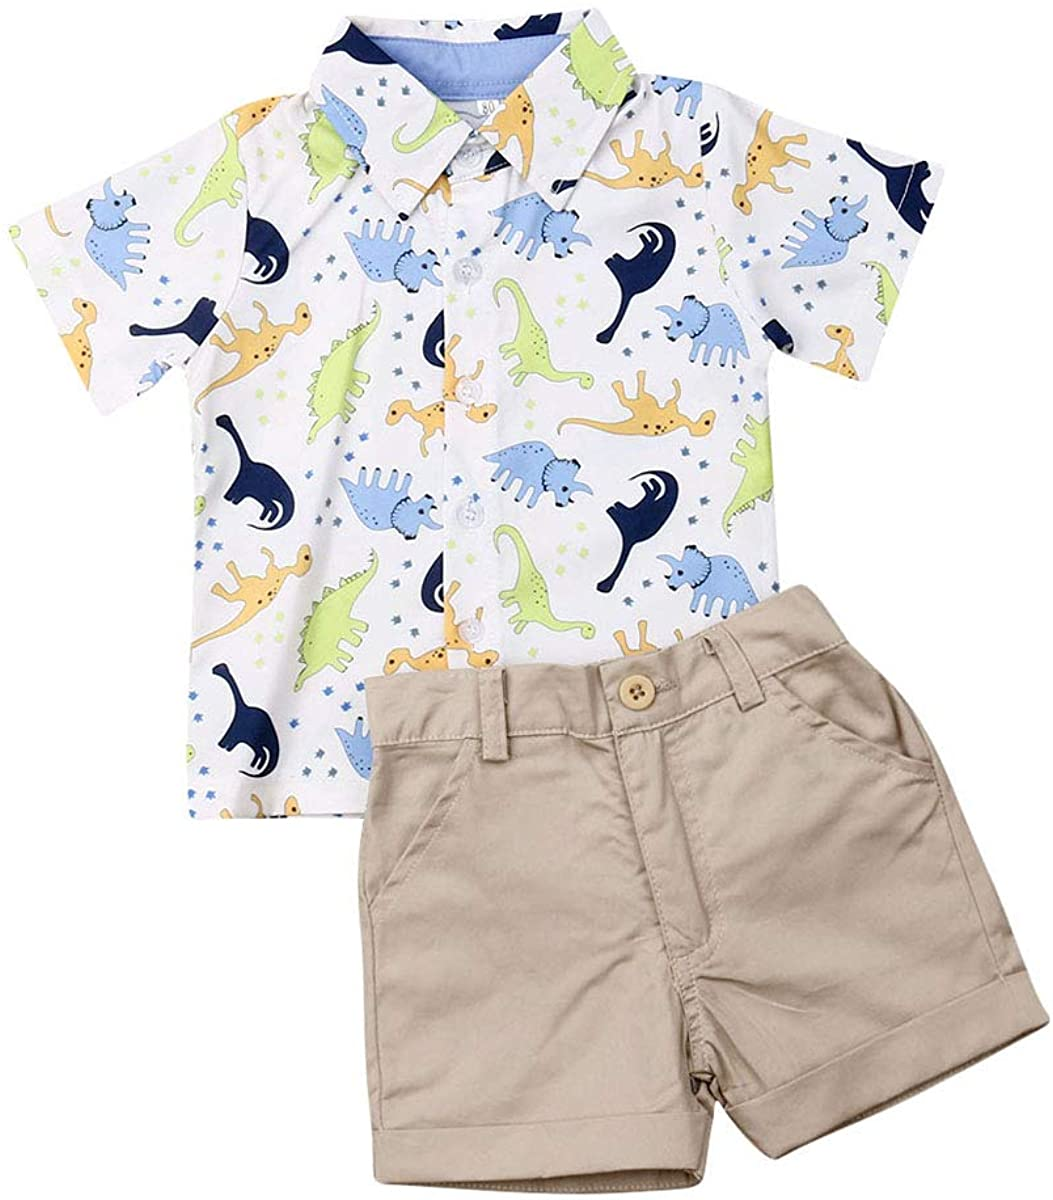 Toddler Kids Baby Boys Summer Clothes Short Sleeve Dinosaur Button Down Shirt Top + Solid Color Shorts Outfits Set